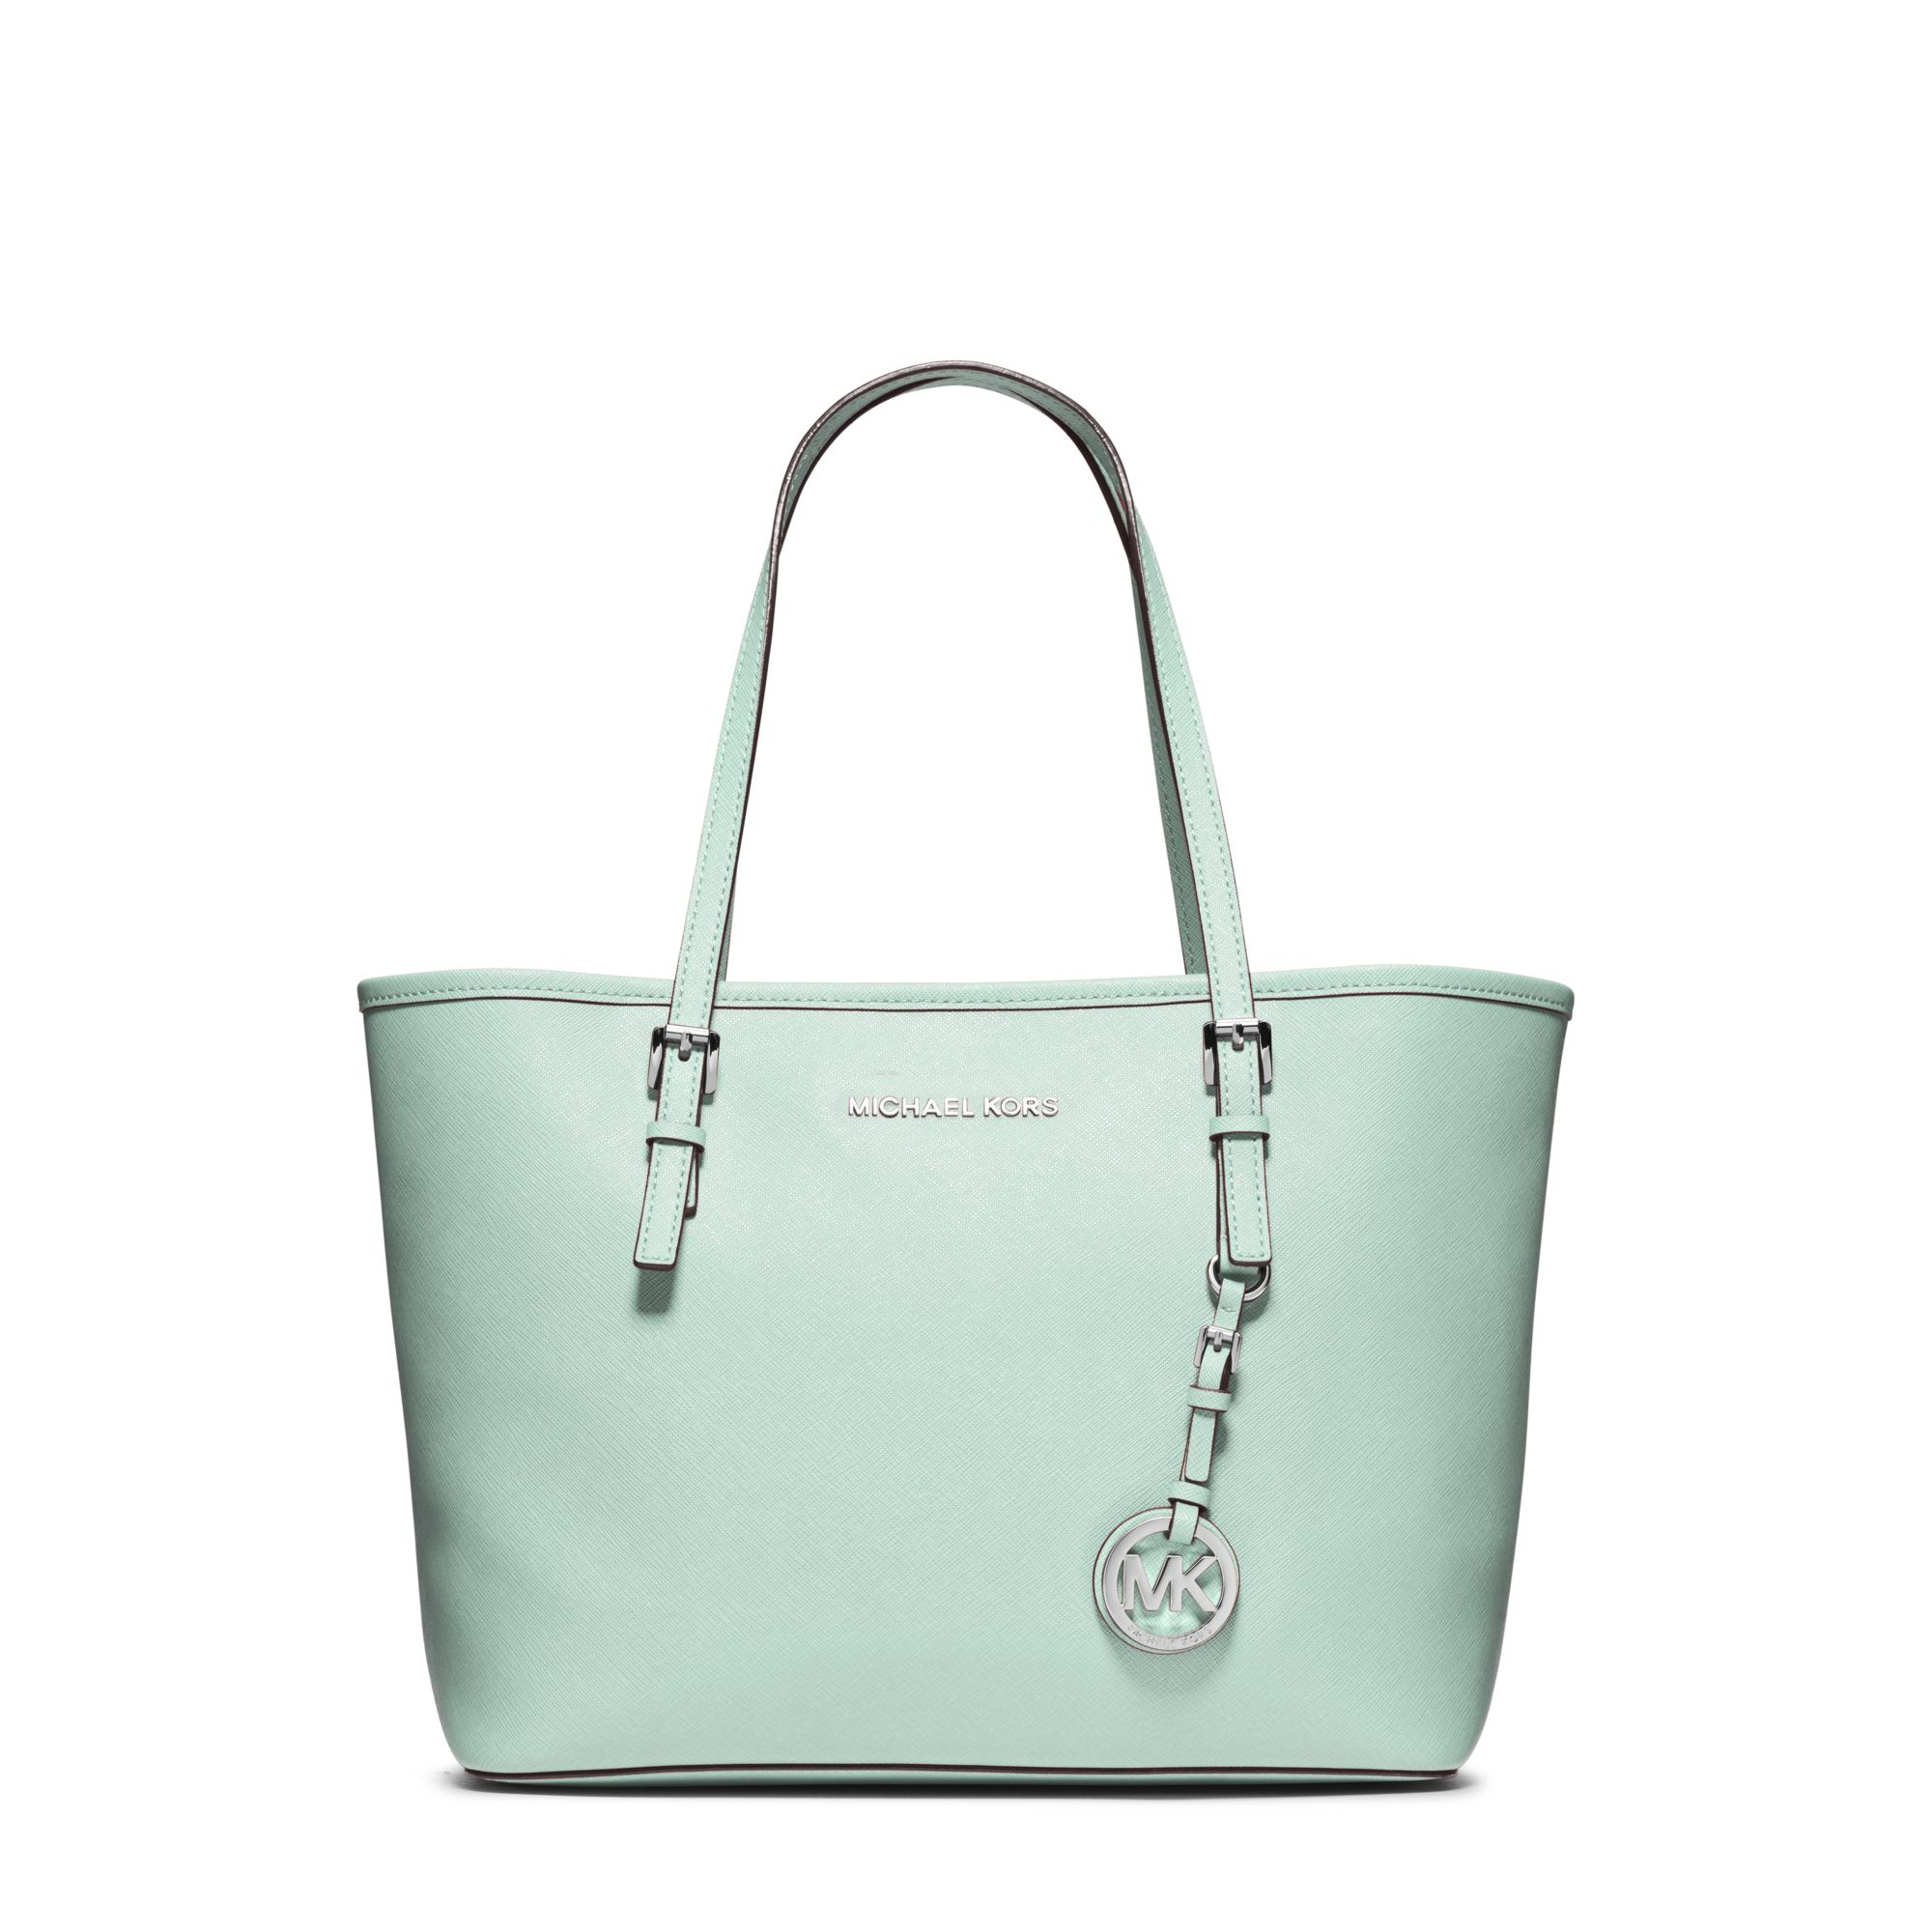 9e524cf732eb13 ... shopping lyst michael kors jet set travel small saffiano leather tote  in green 63000 7b16a